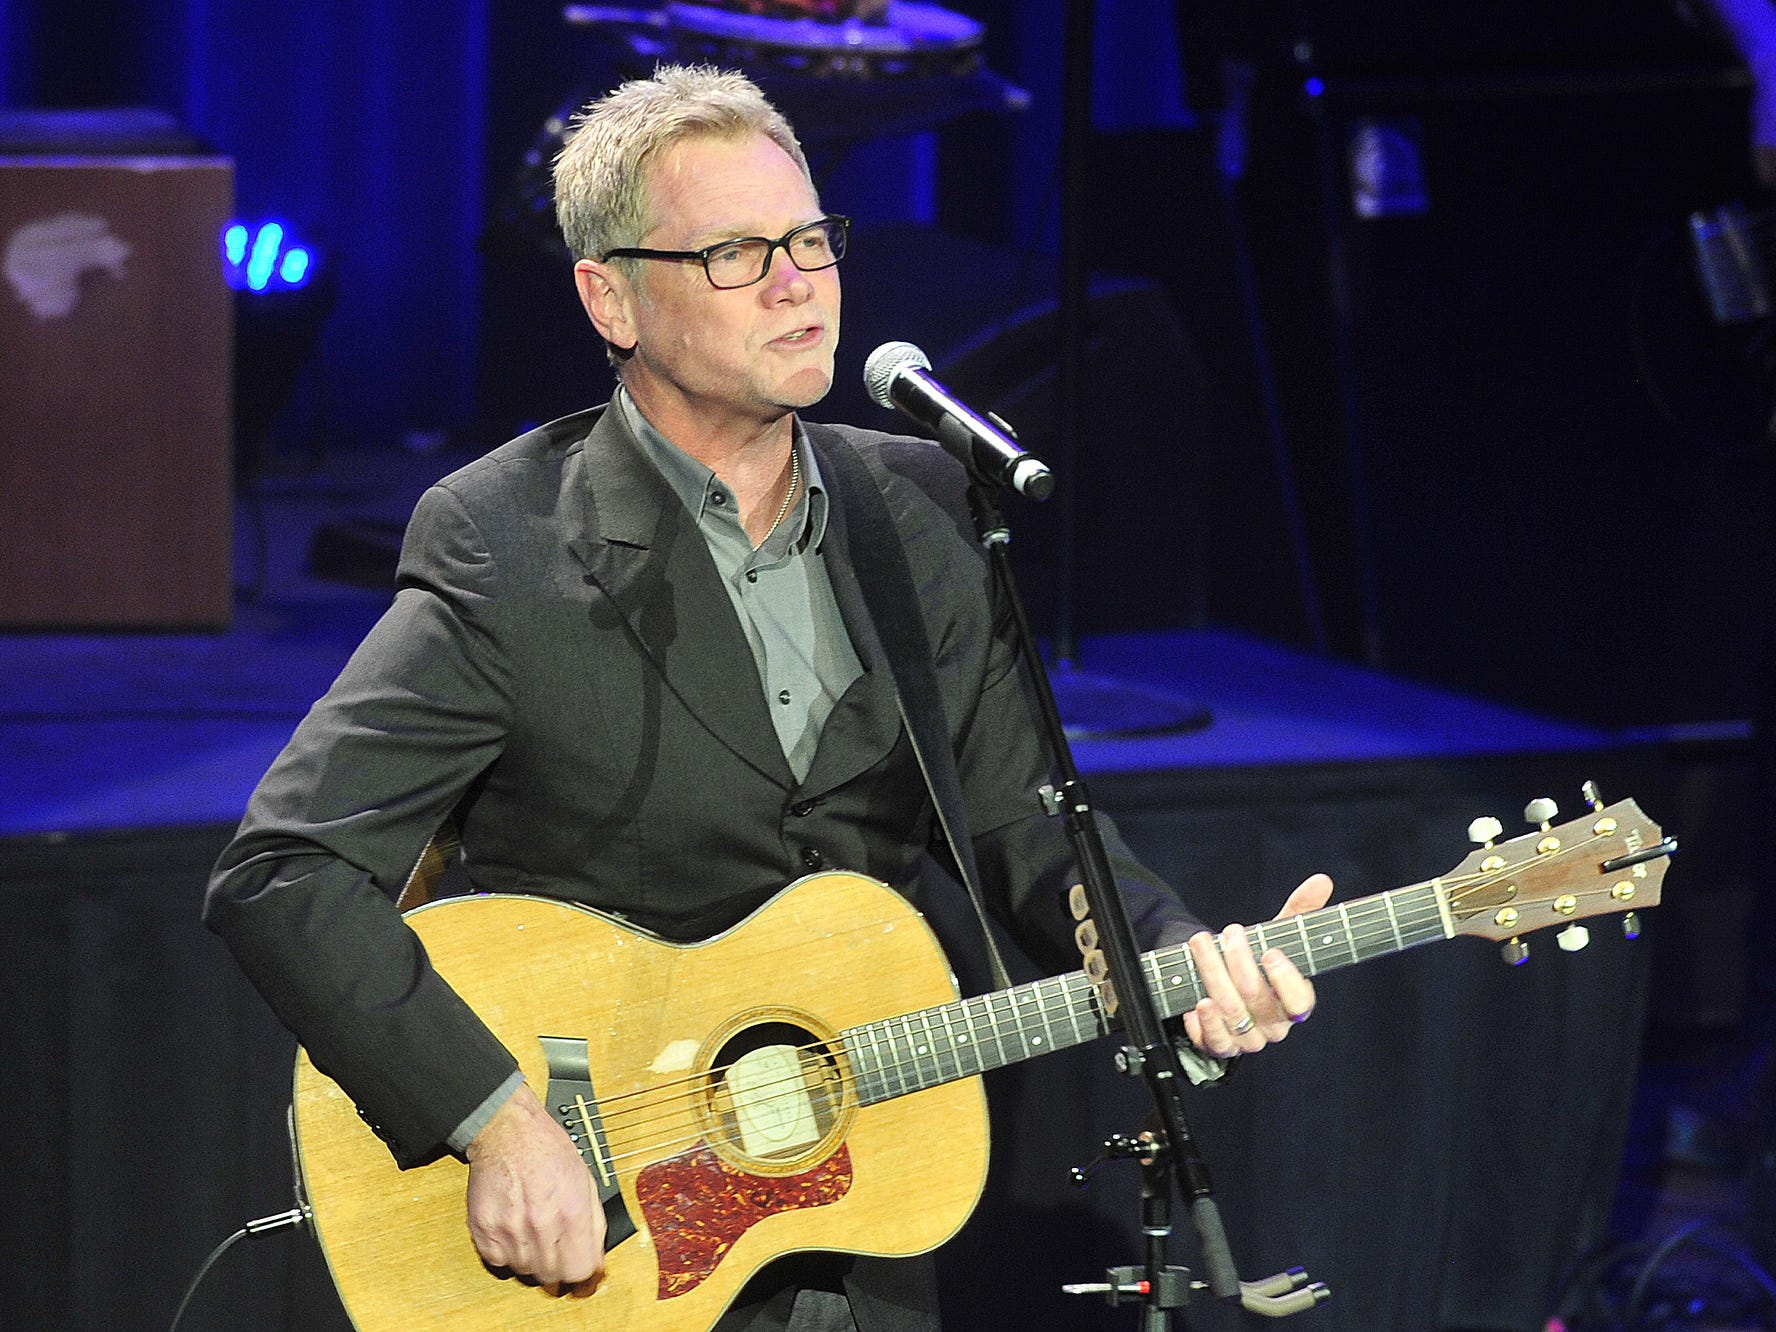 OCT. 9GRAND OLE OPRY WITH STEVEN CURTIS CHAPMAN: 7 p.m. Grand Ole Opry House, $40-$99, opry.com